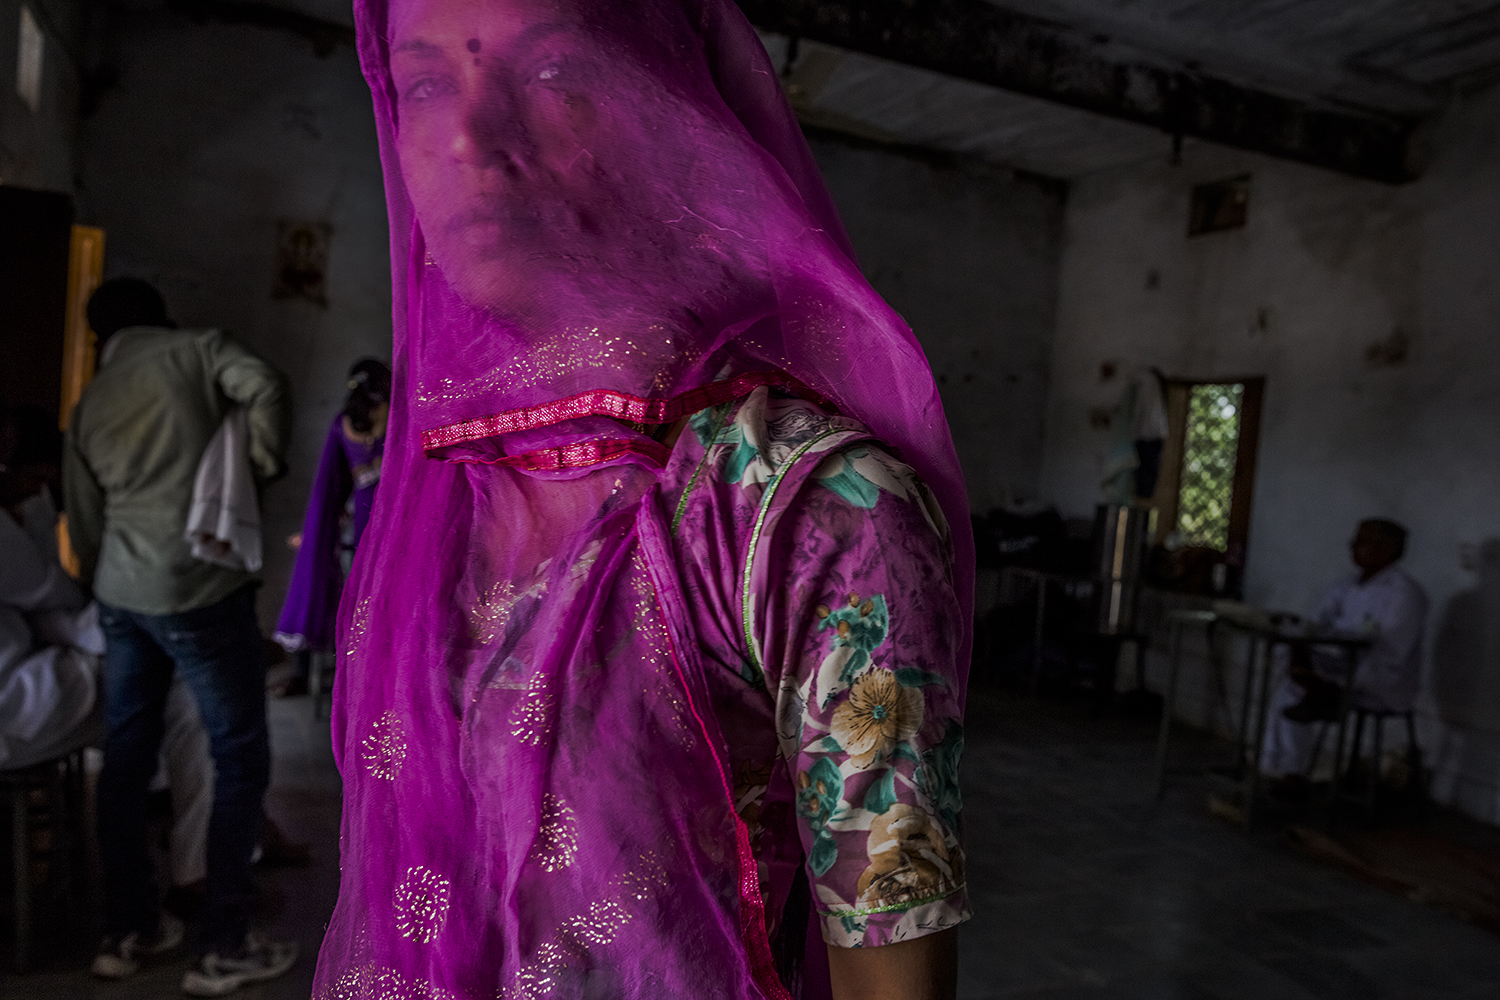 Indian women wait to cast their vote at a polling station on April 17, 2014 in the Jodhpur District in the desert state of Rajasthan, India.